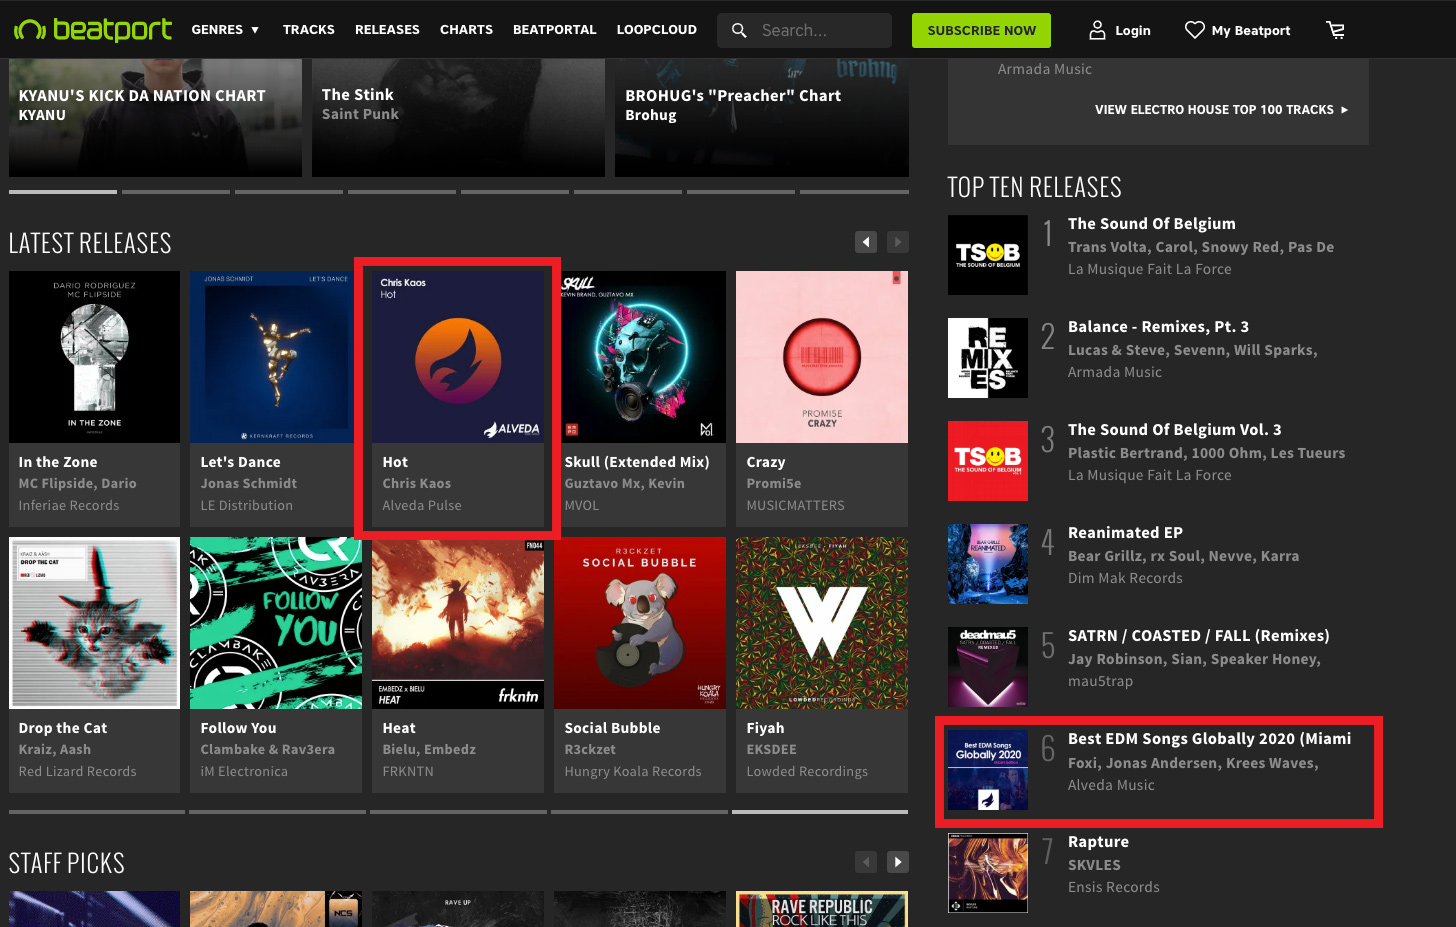 Top 6 on Beatport Electro House releases!